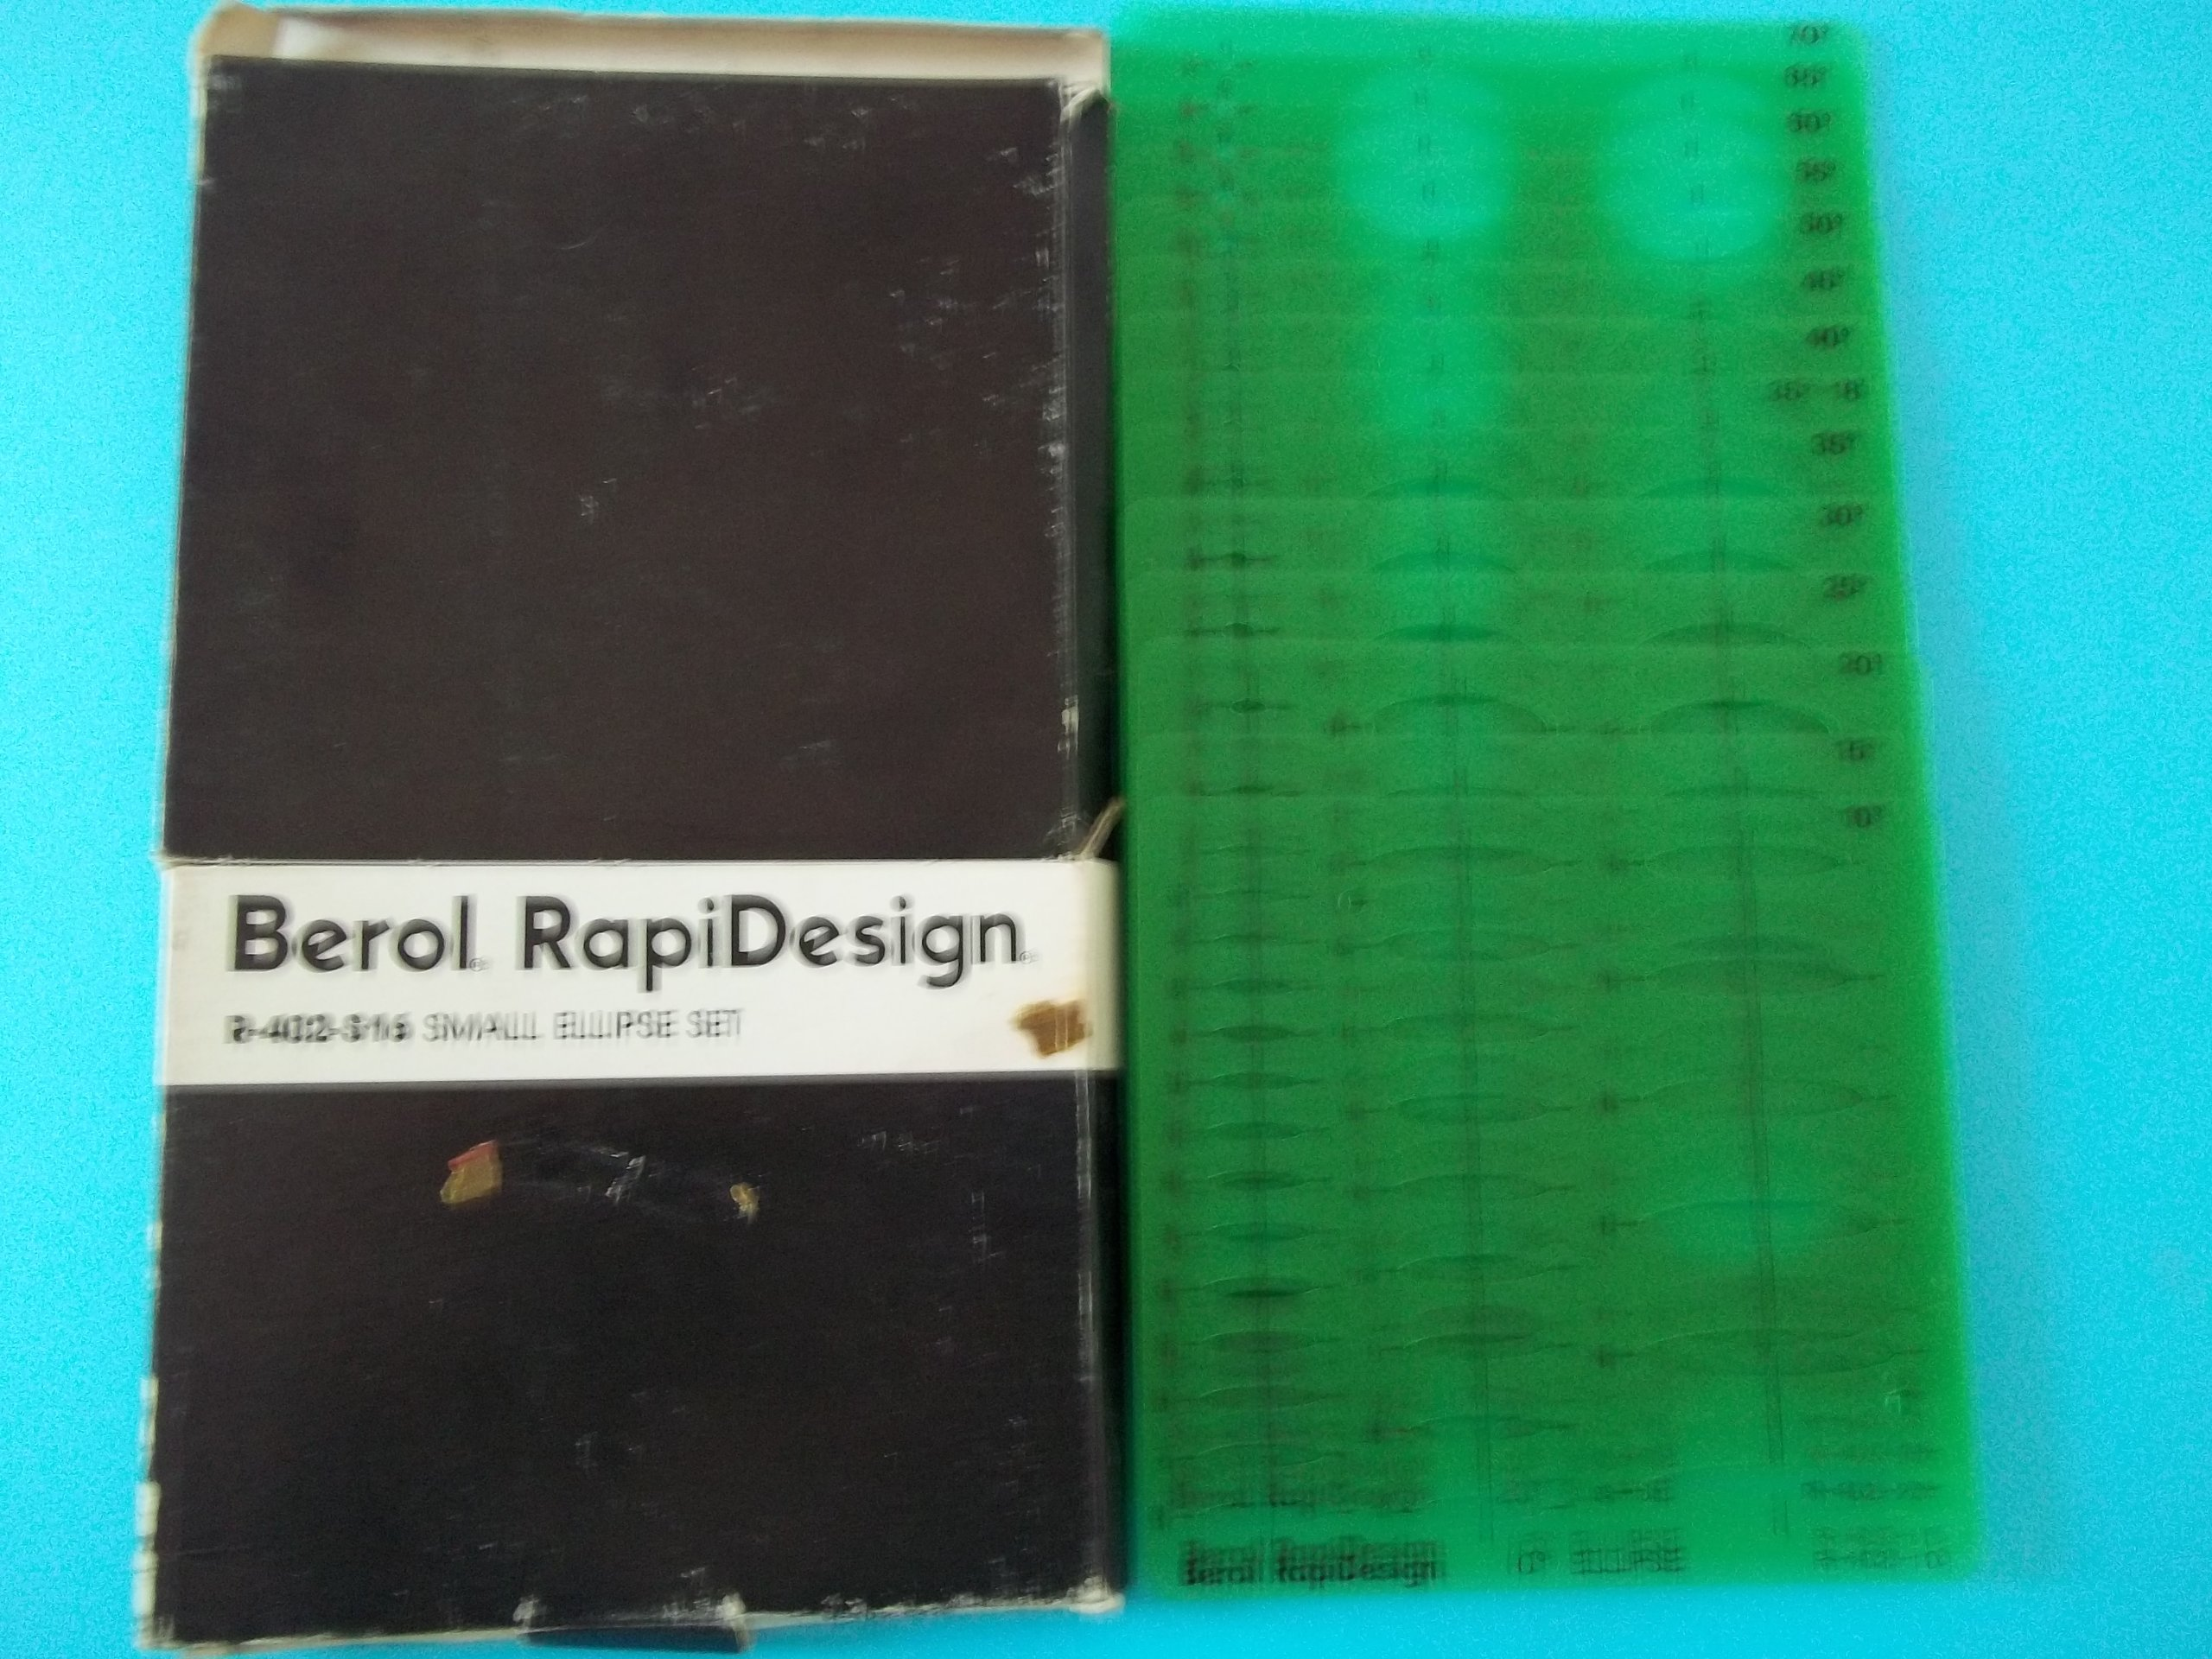 Berol Rapidesign R-402-S16 Ellipses 16 Templates 10 Degrees thru 80 Degrees Hot-Stamped Centering Lines Made in USA